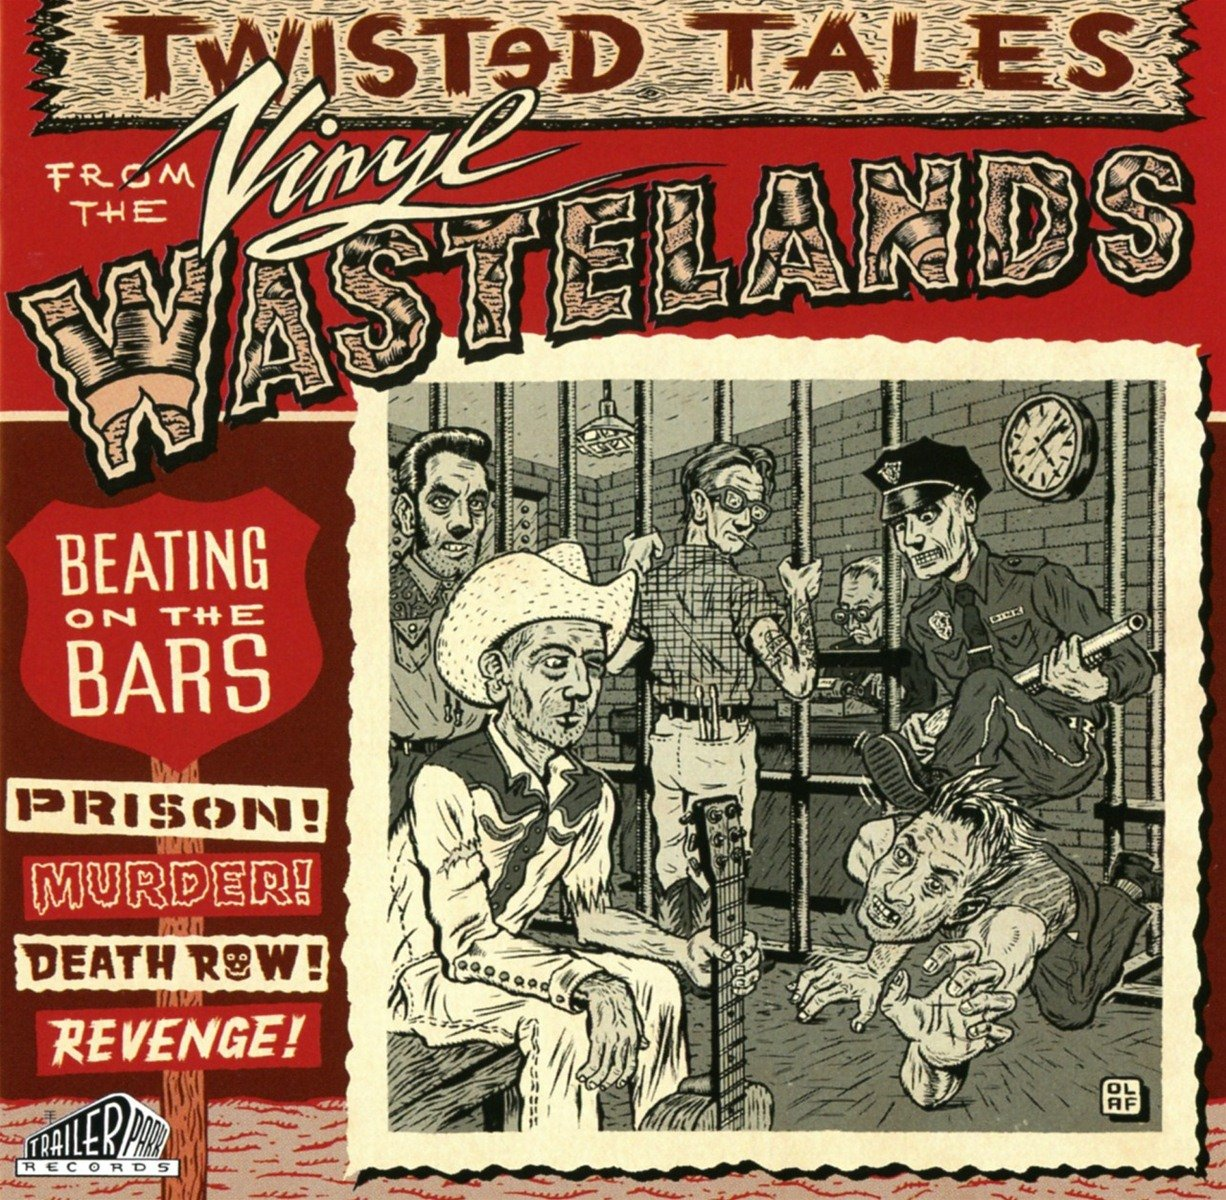 Beating On the Bars is the second volume in the Twisted Tales from the Vinyl Wasteland series